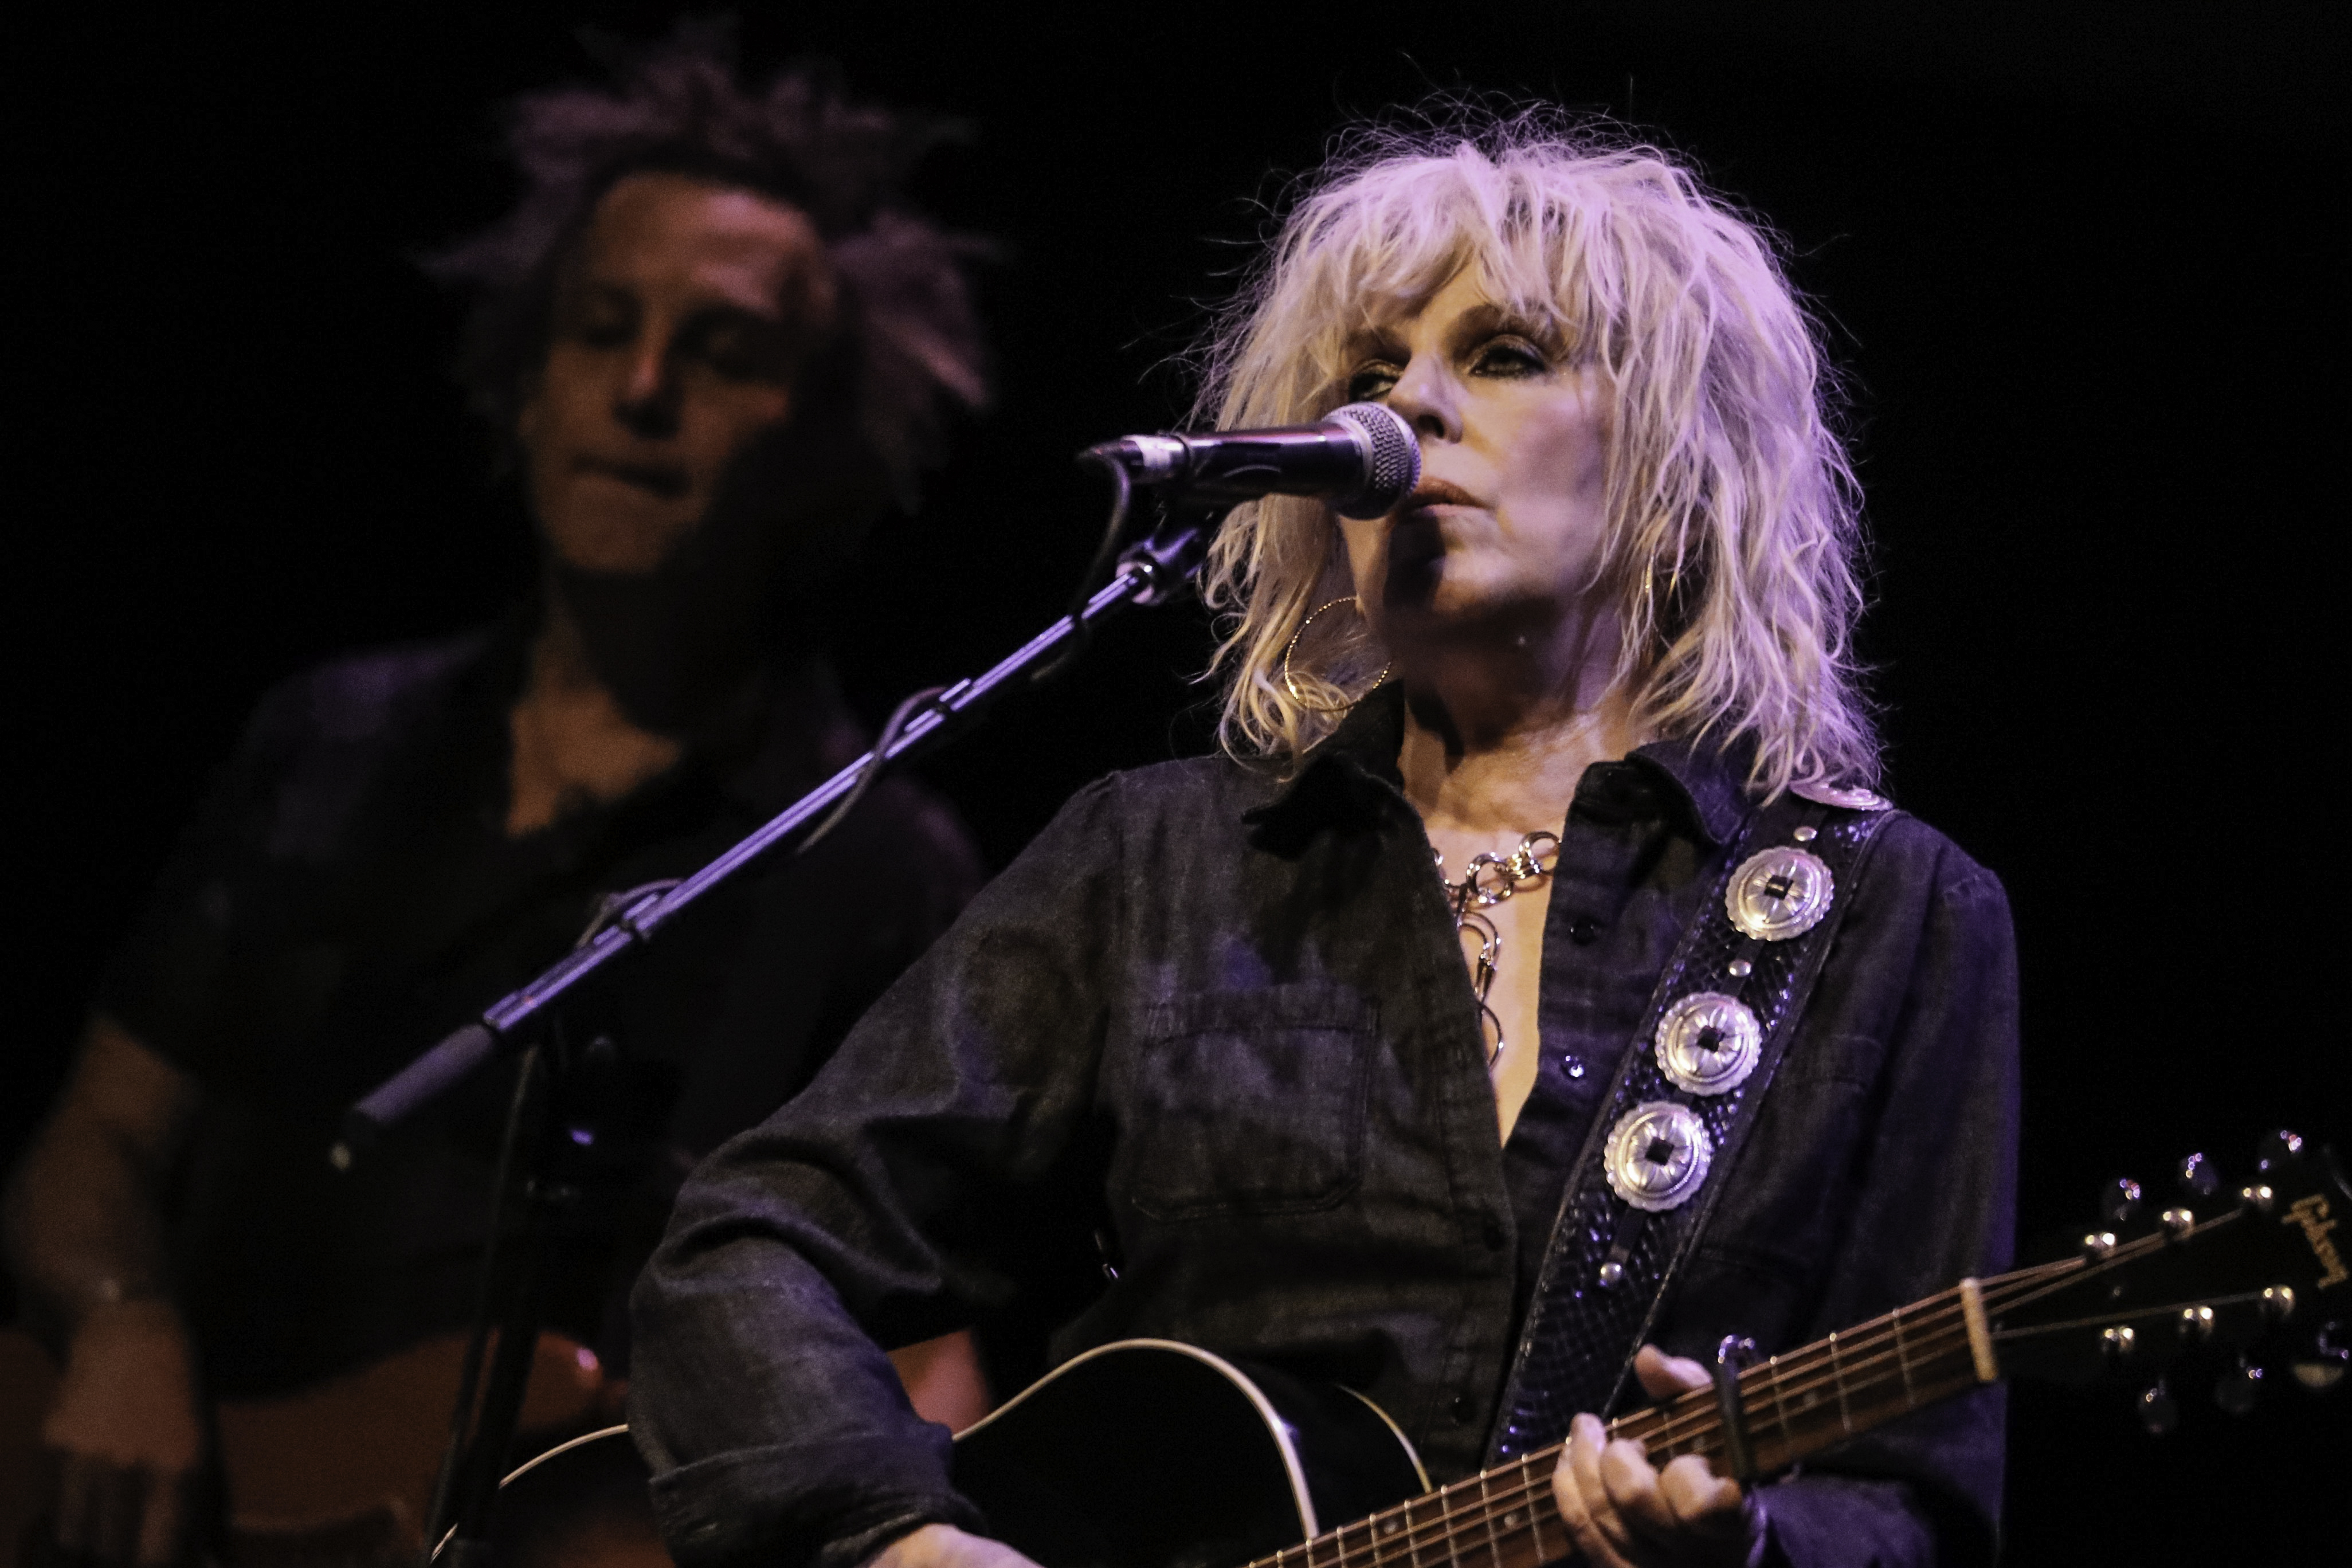 Lucinda Williams di Andy Witchger / CC BY (https://creativecommons.org/licenses/by/2.0)